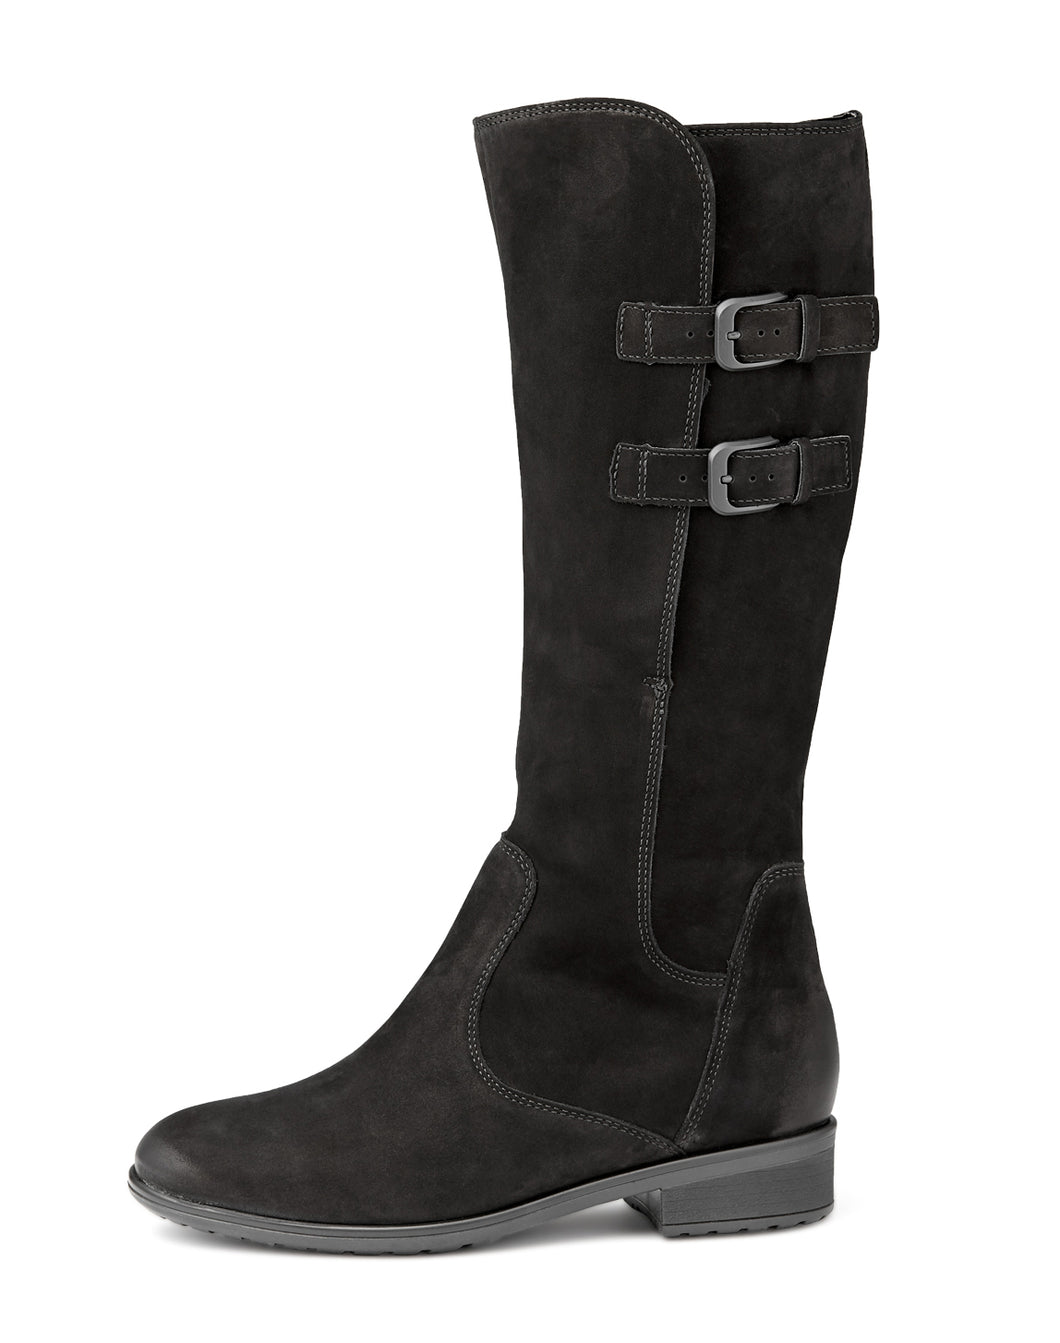 ARA 49525 TALL BOOT BLACK NUBUCK